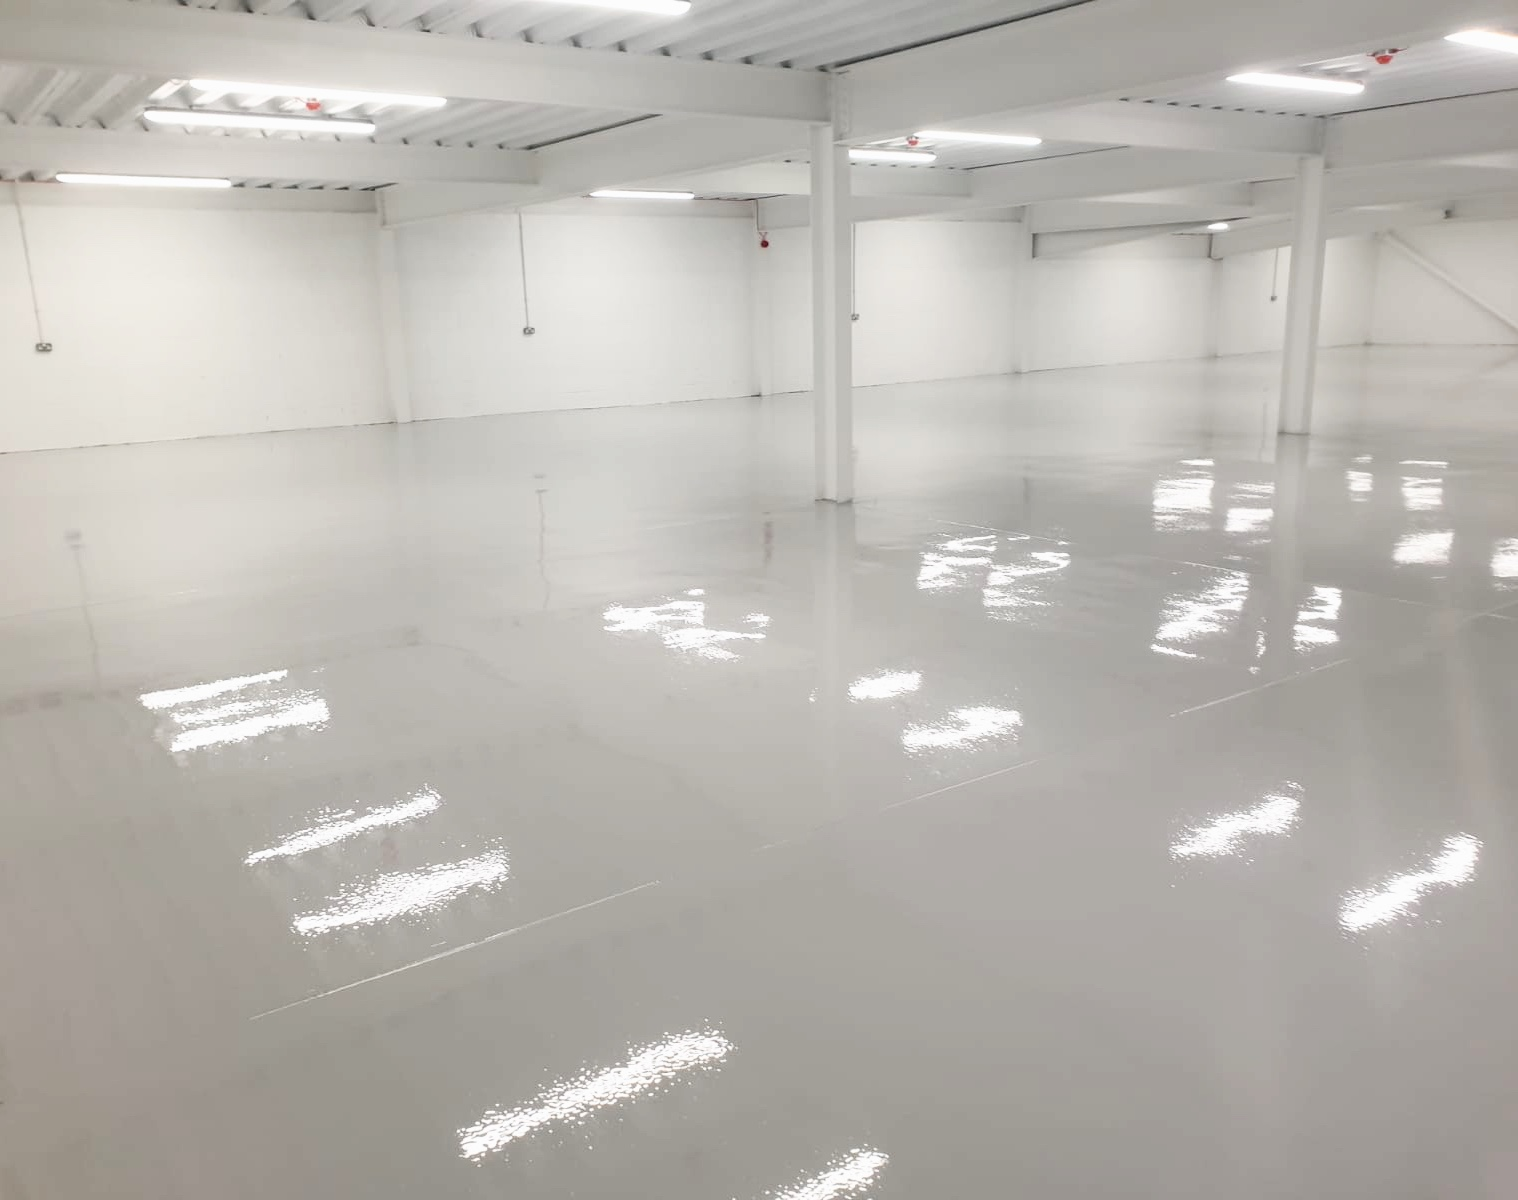 Resin applied to warehouse floor